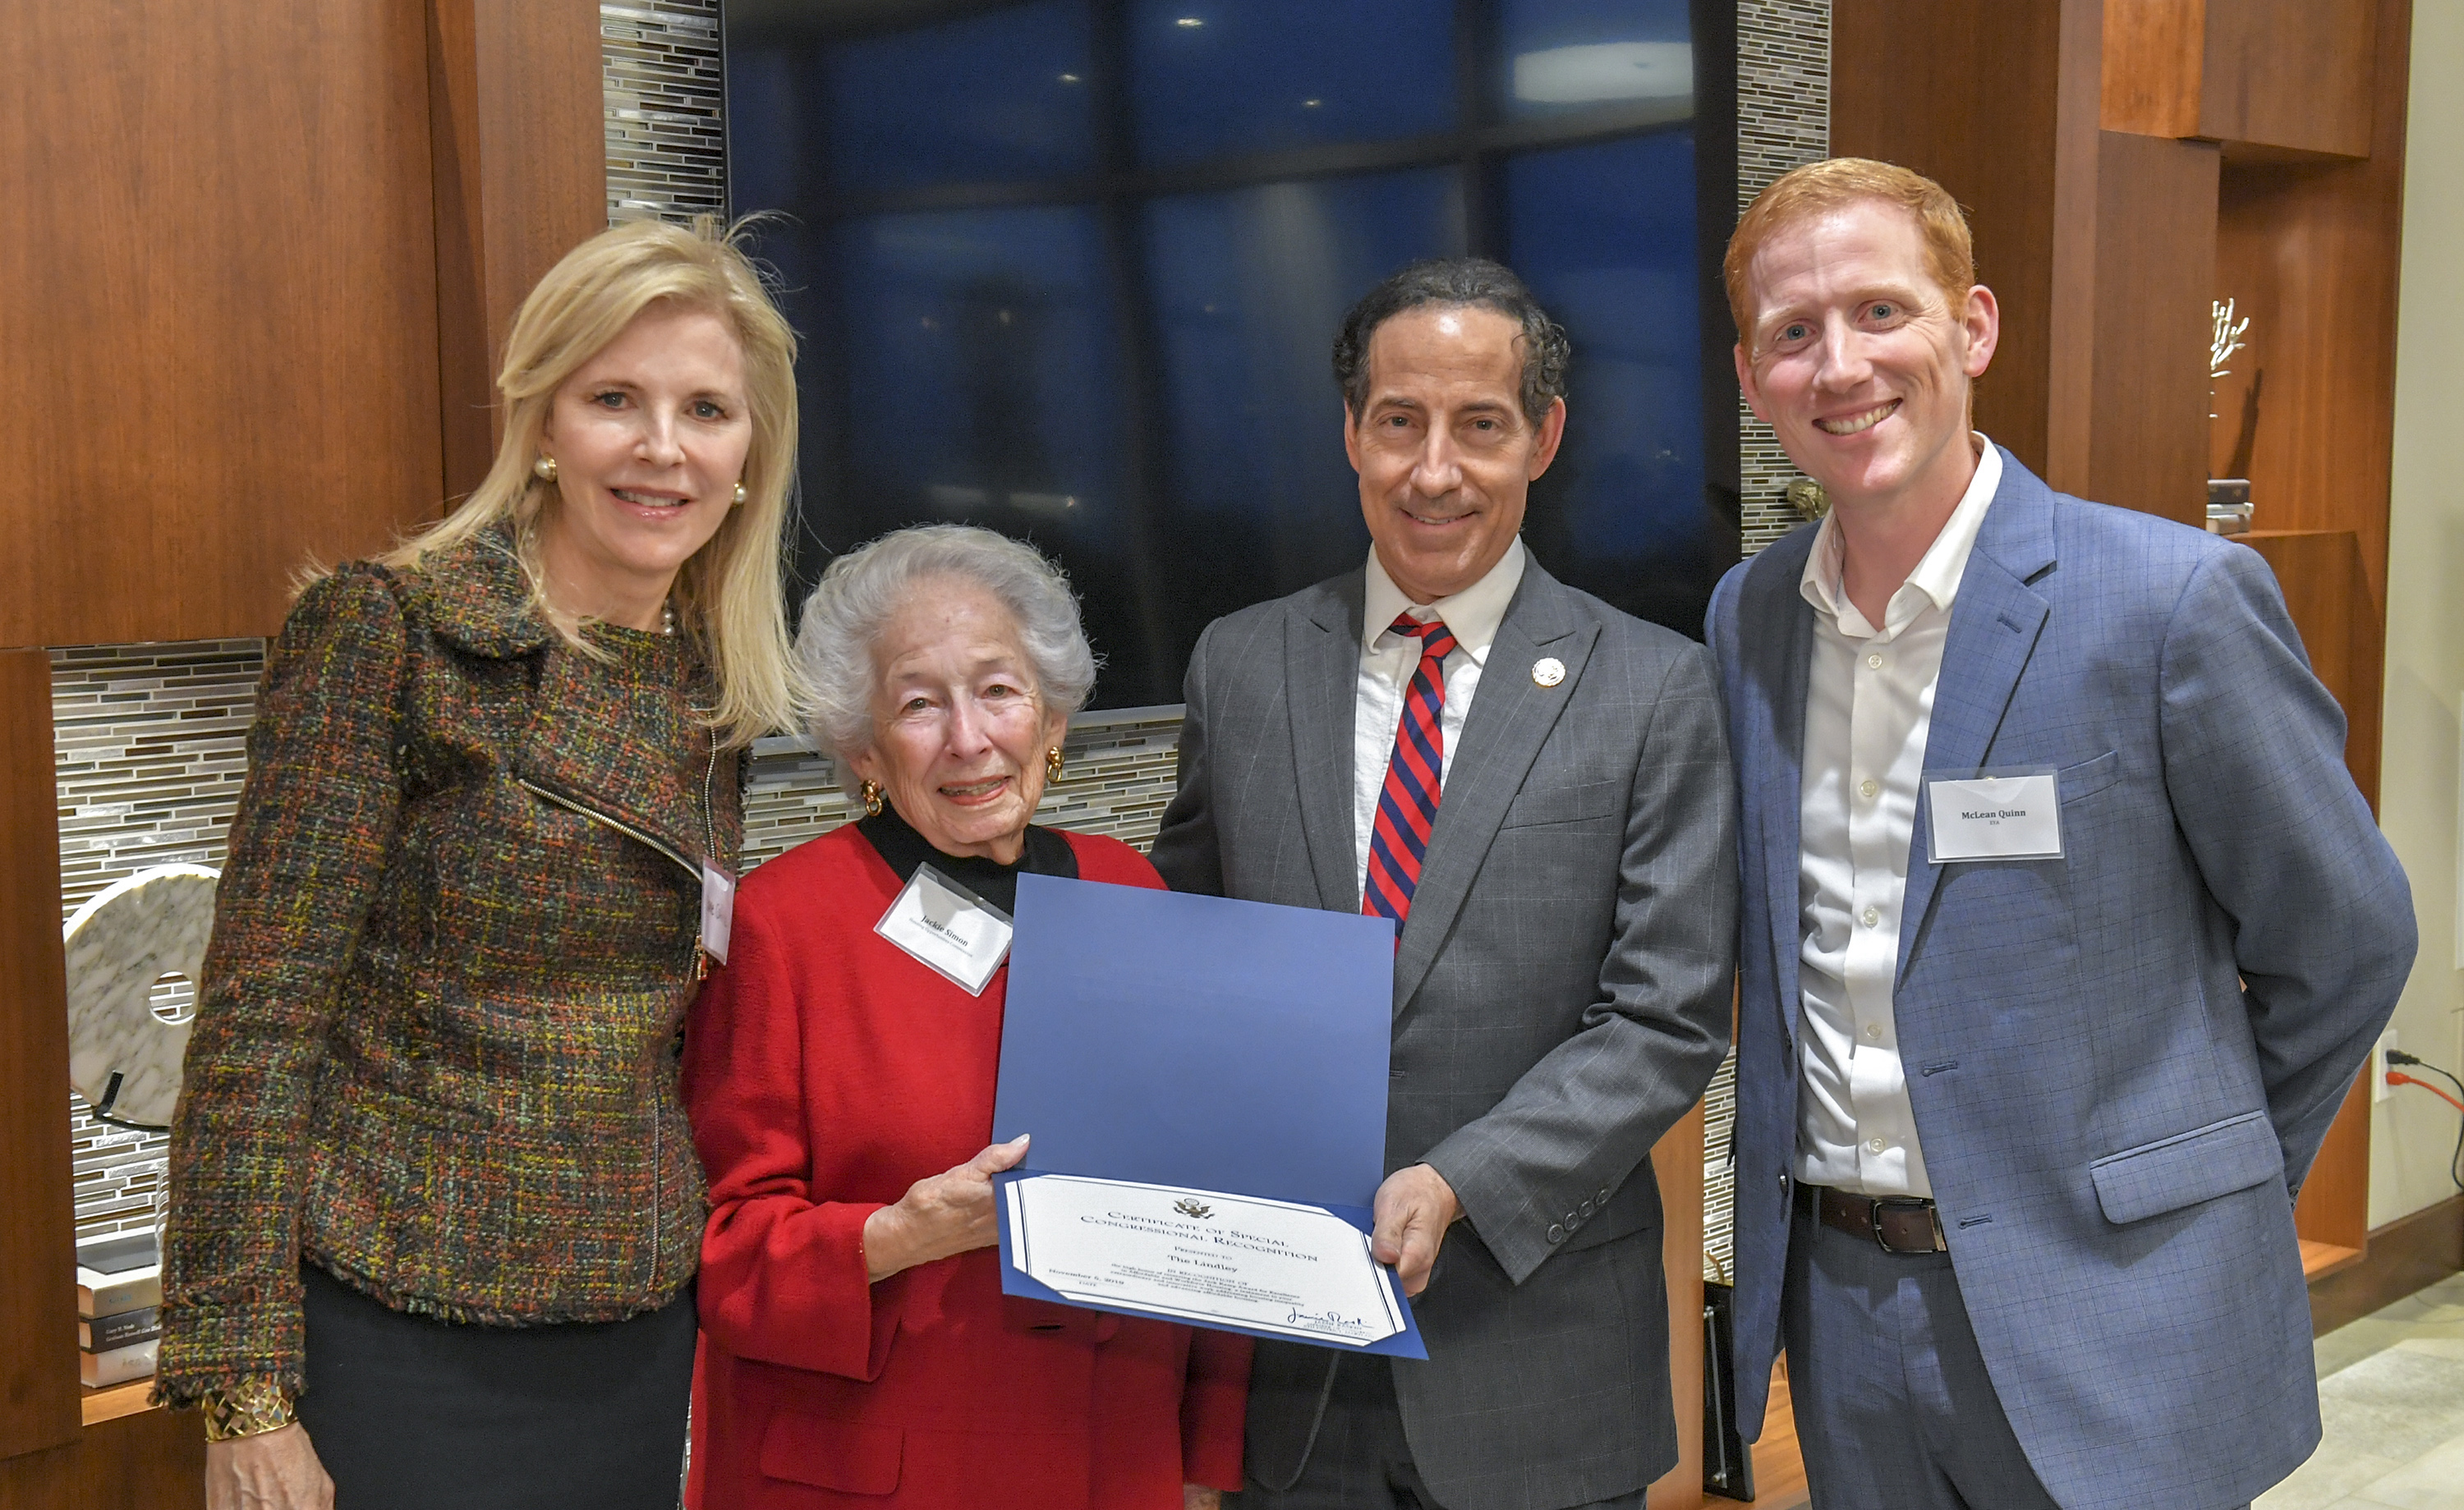 The Lindley Awarded Congressional Recognition from Congressman Raskin During Celebration of 2019 Jack Kemp Award